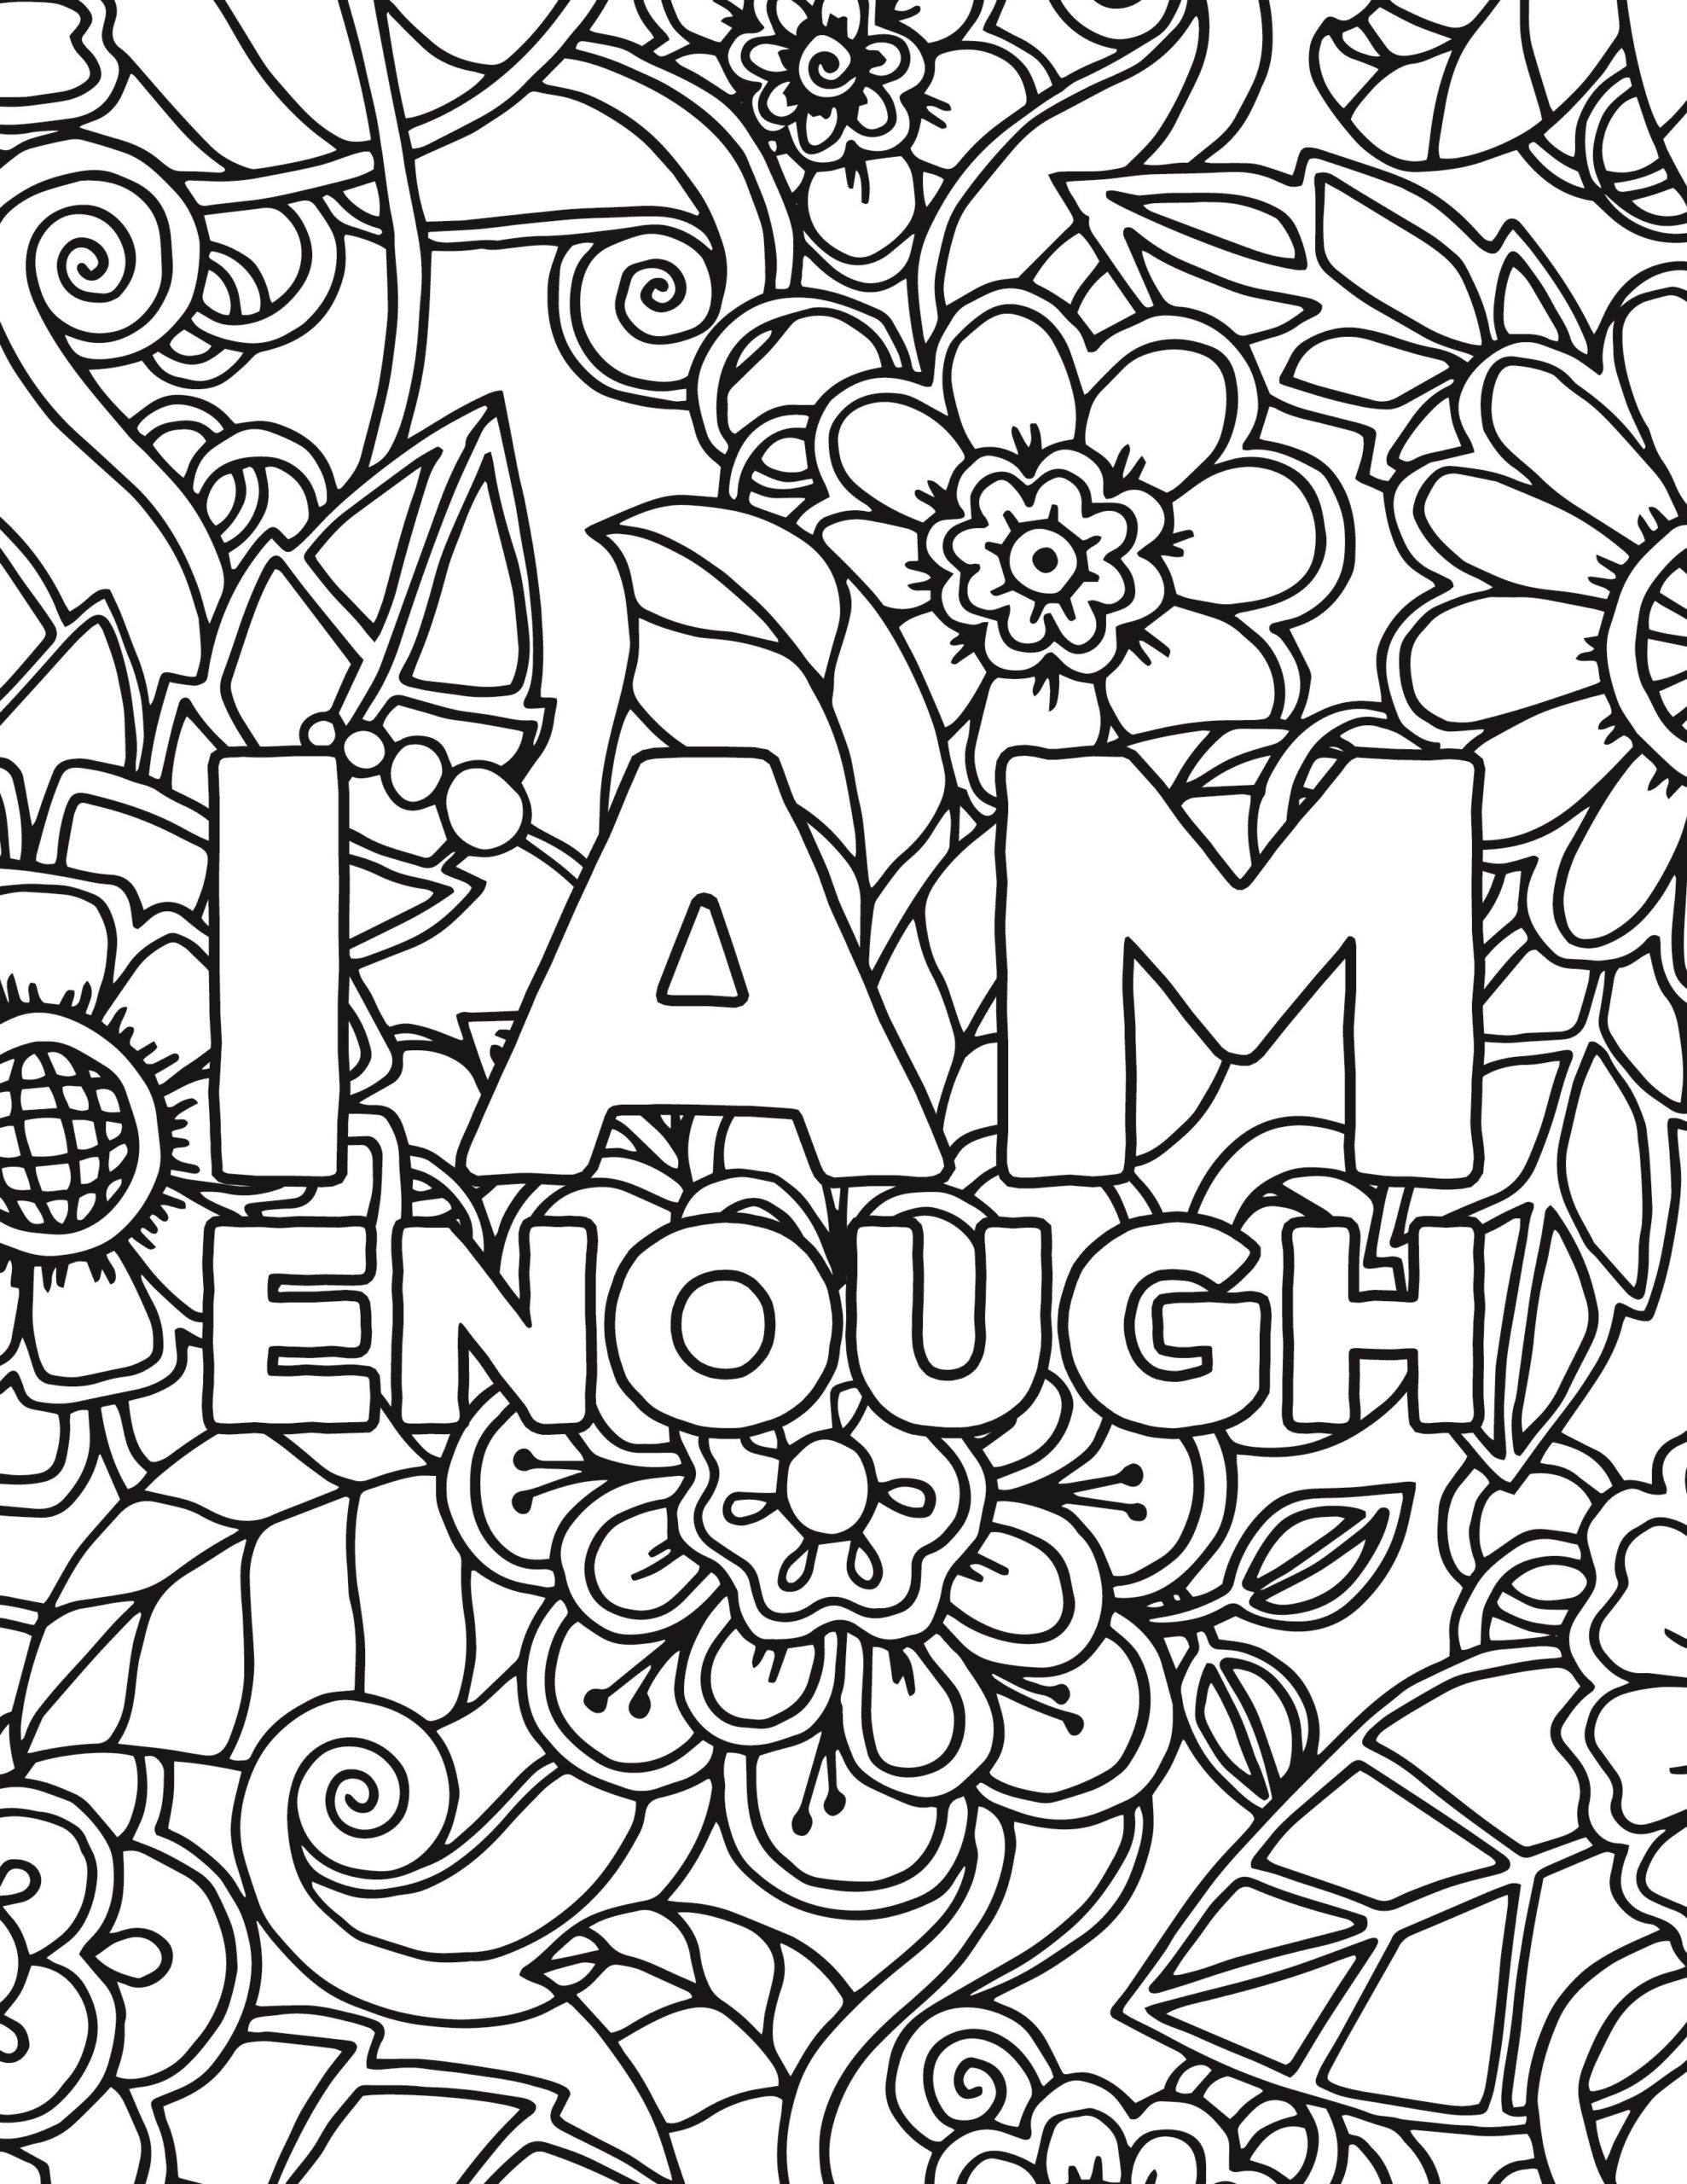 Download Self-esteem Coloring Pages - Coloring Home